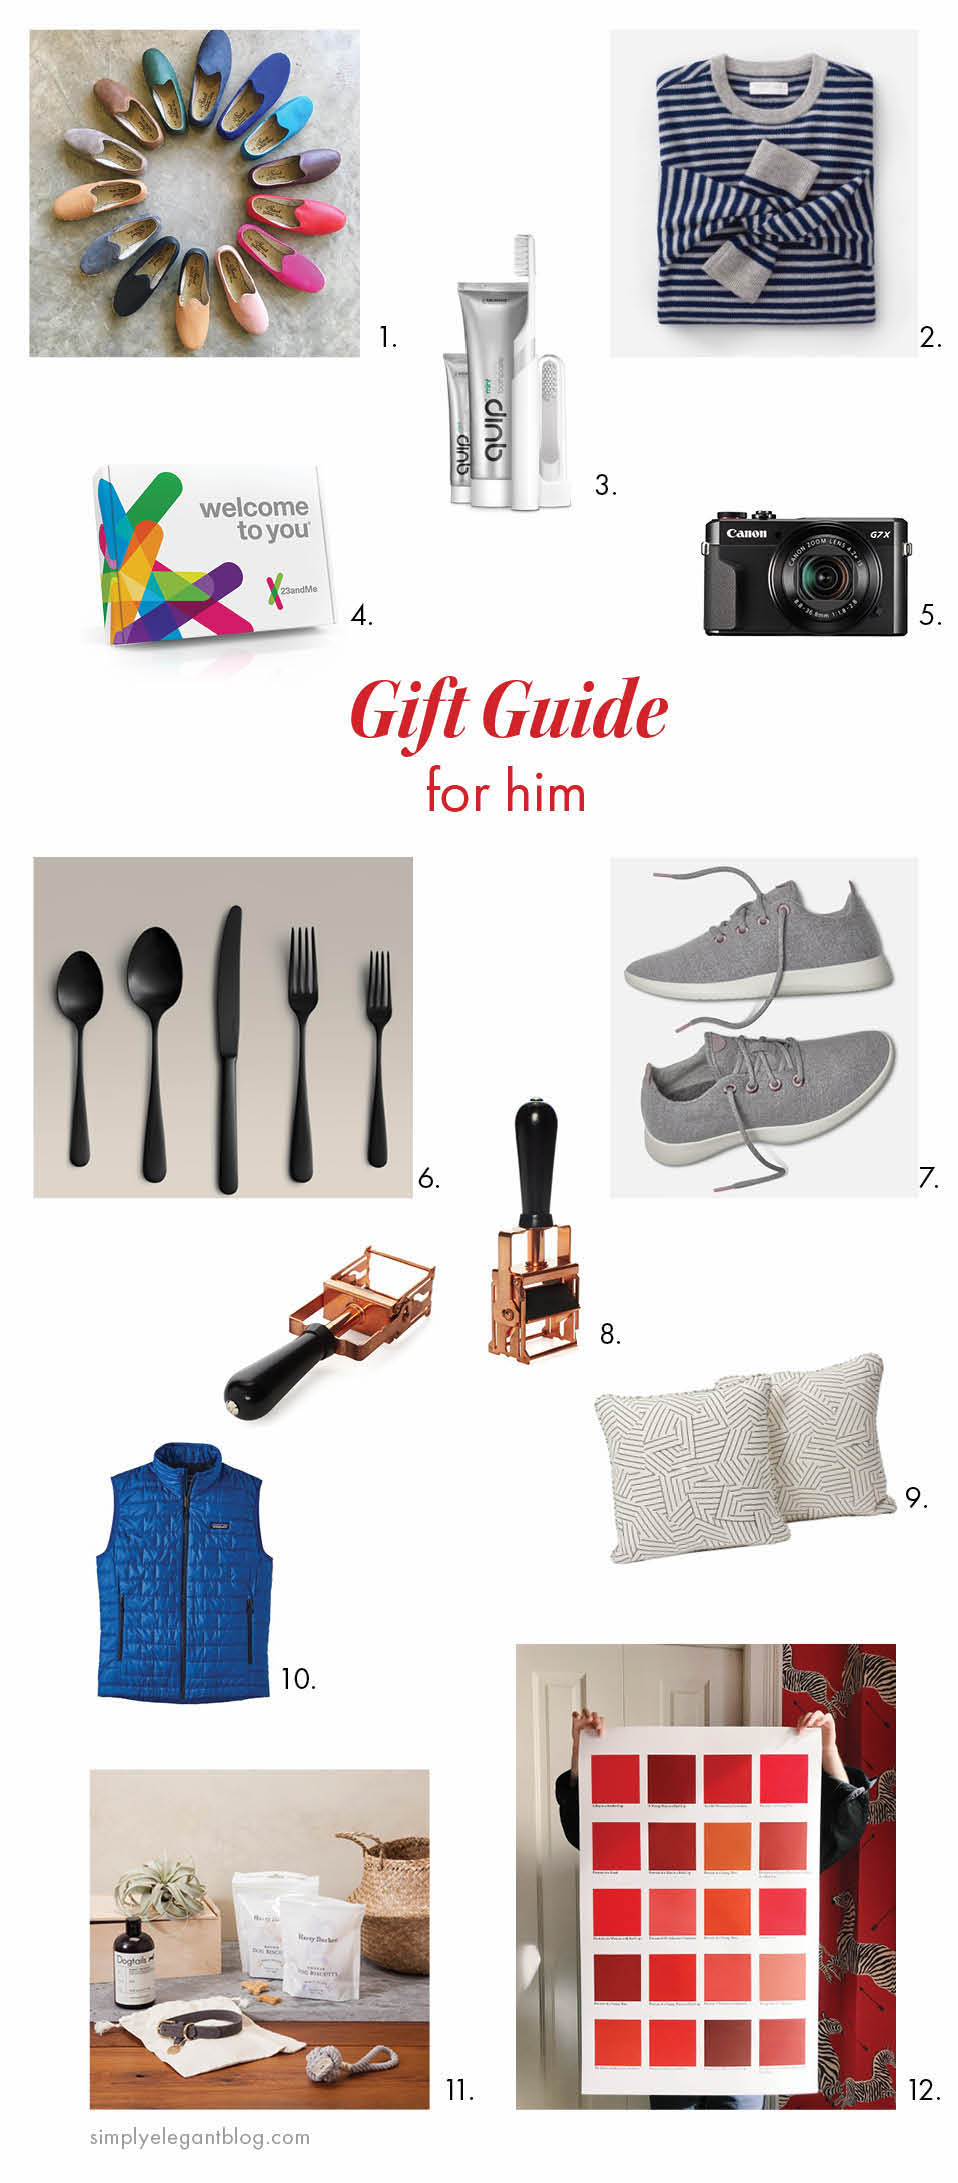 Gift Guide for Him - Patagonia Vest, Sabah Shoes, Schumacher Pillows